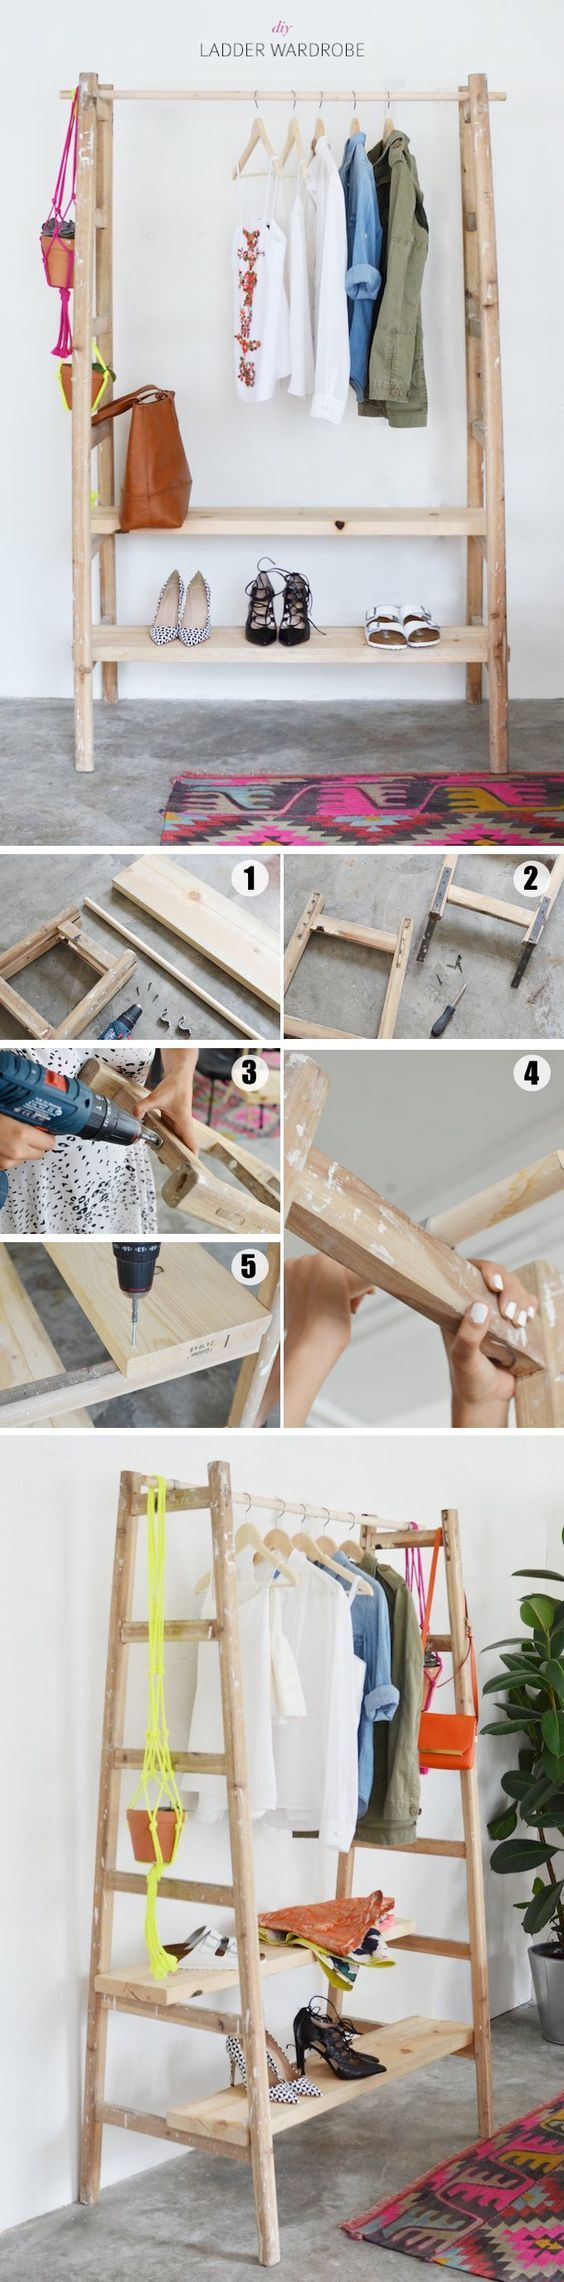 15 Inspiring Ladder Hacks For Every Room   Woodworking, Diy wood and ...